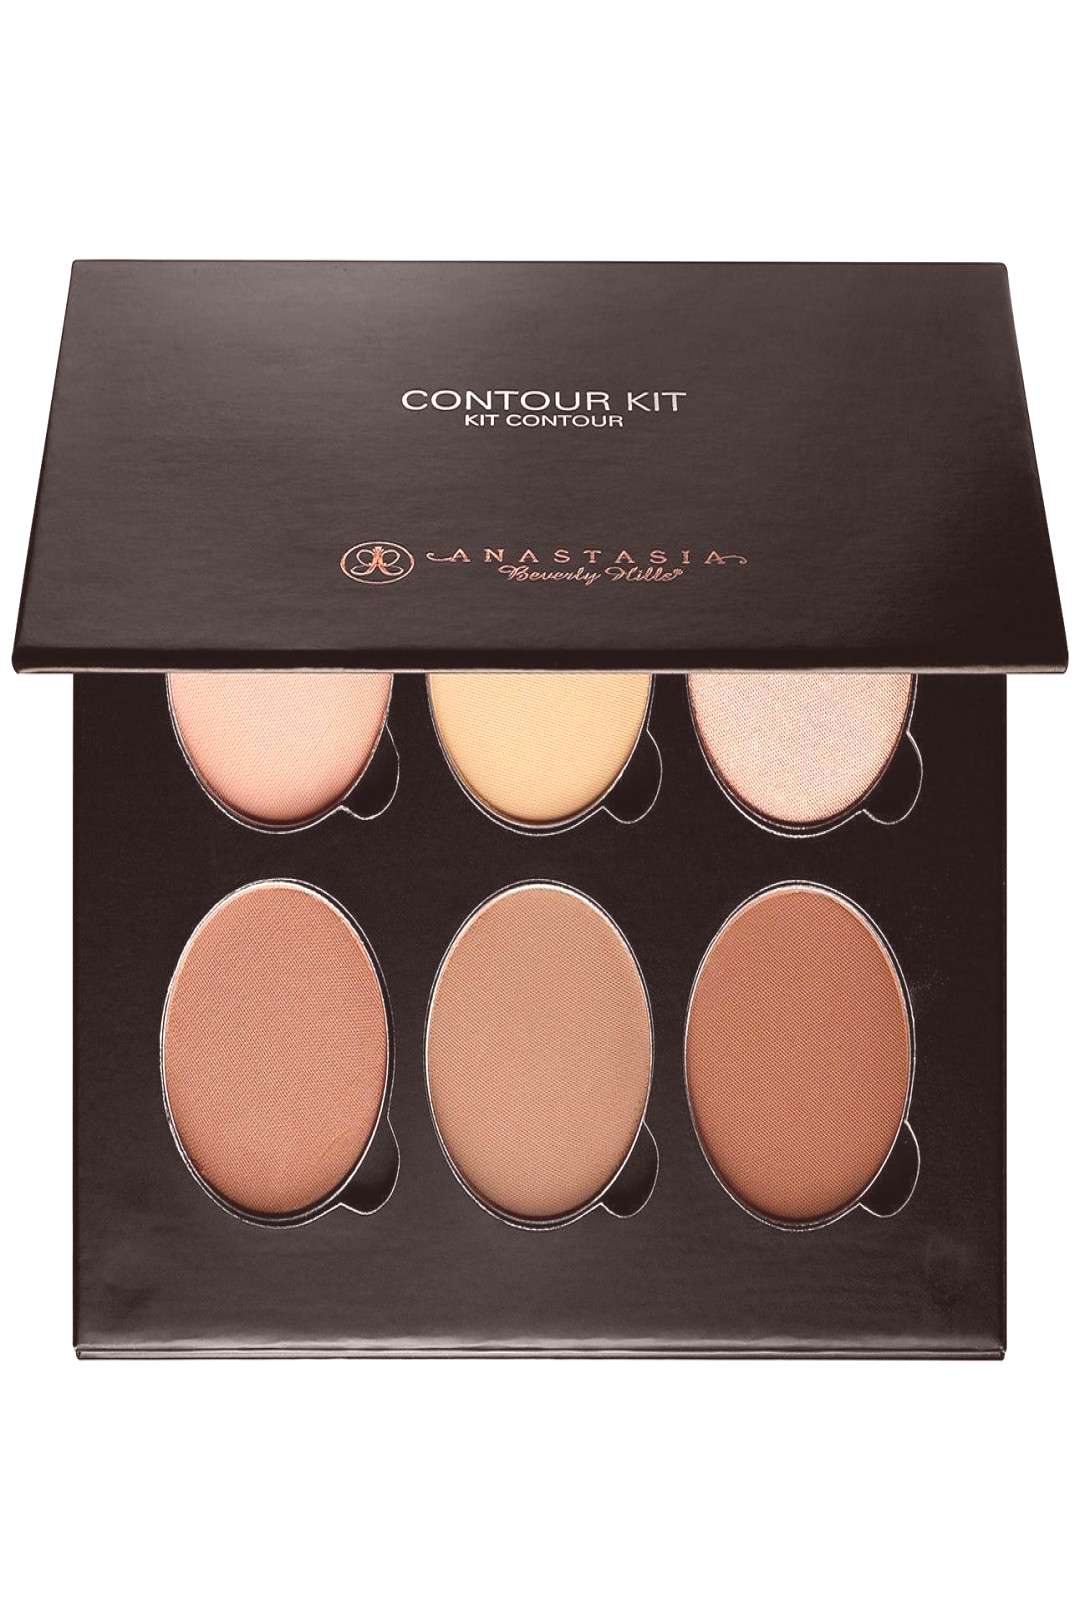 How To Use The Anastasia Contouring Palette To Achieve The Look Youre Going For...